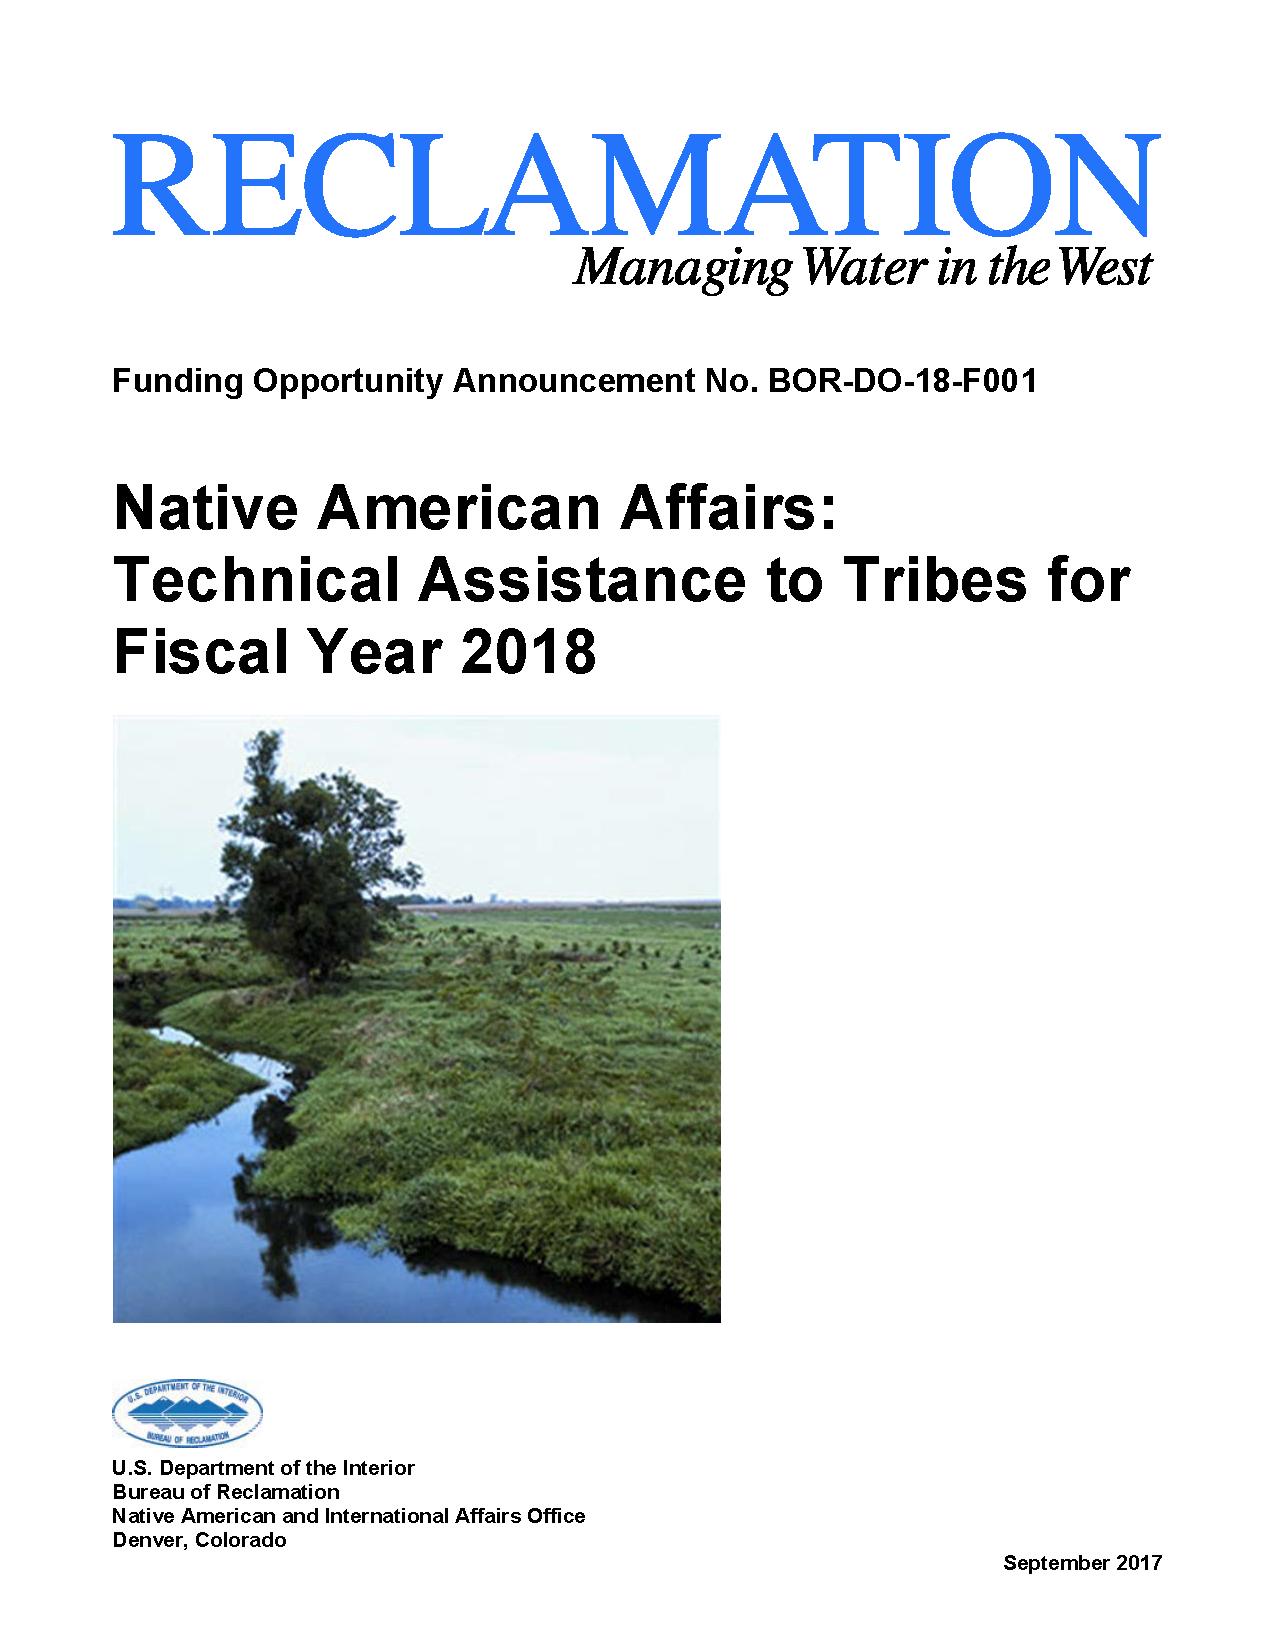 Native American Affairs: Technical Assistance to Tribes for Fiscal Year 2018 Funding Opportunity